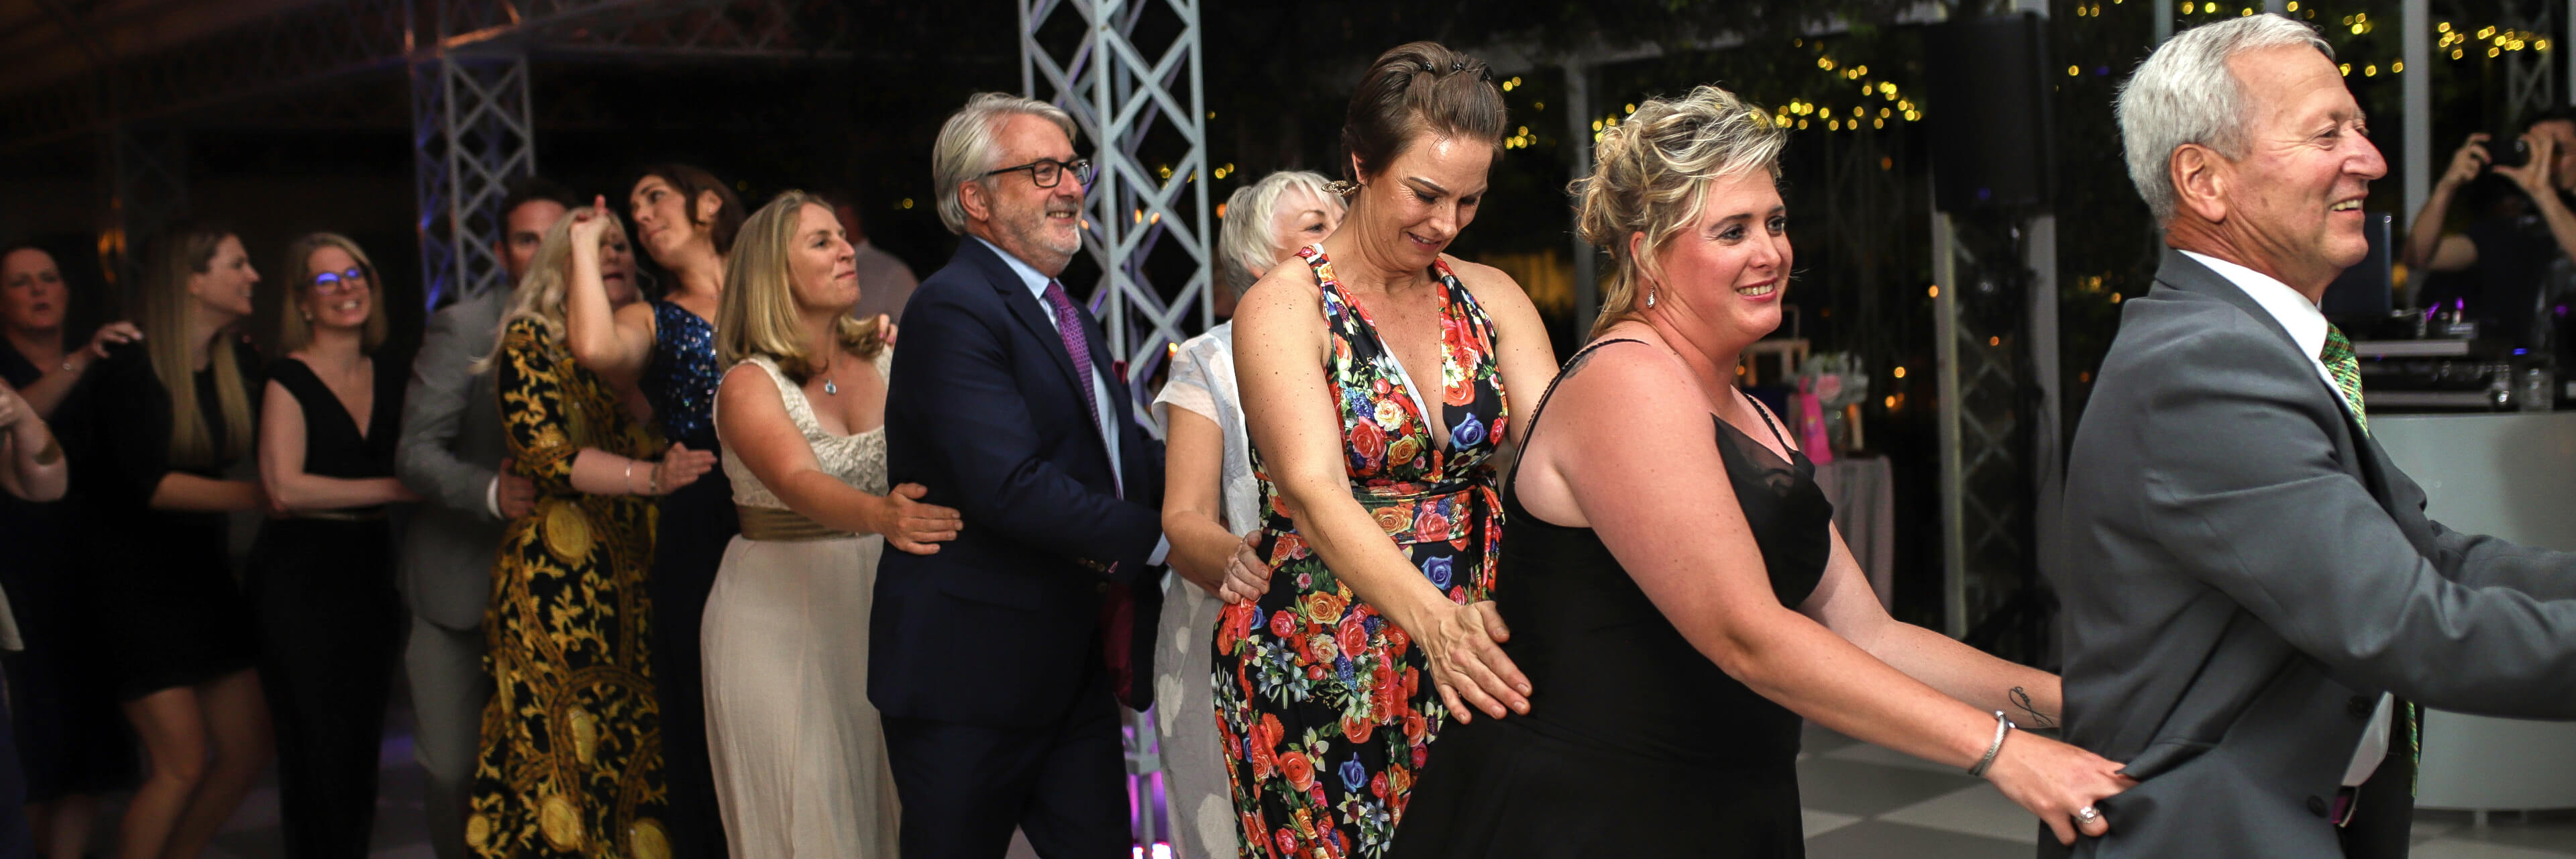 People doing the locomotion at a Stellenbosch wedding at Belair Pavilion.